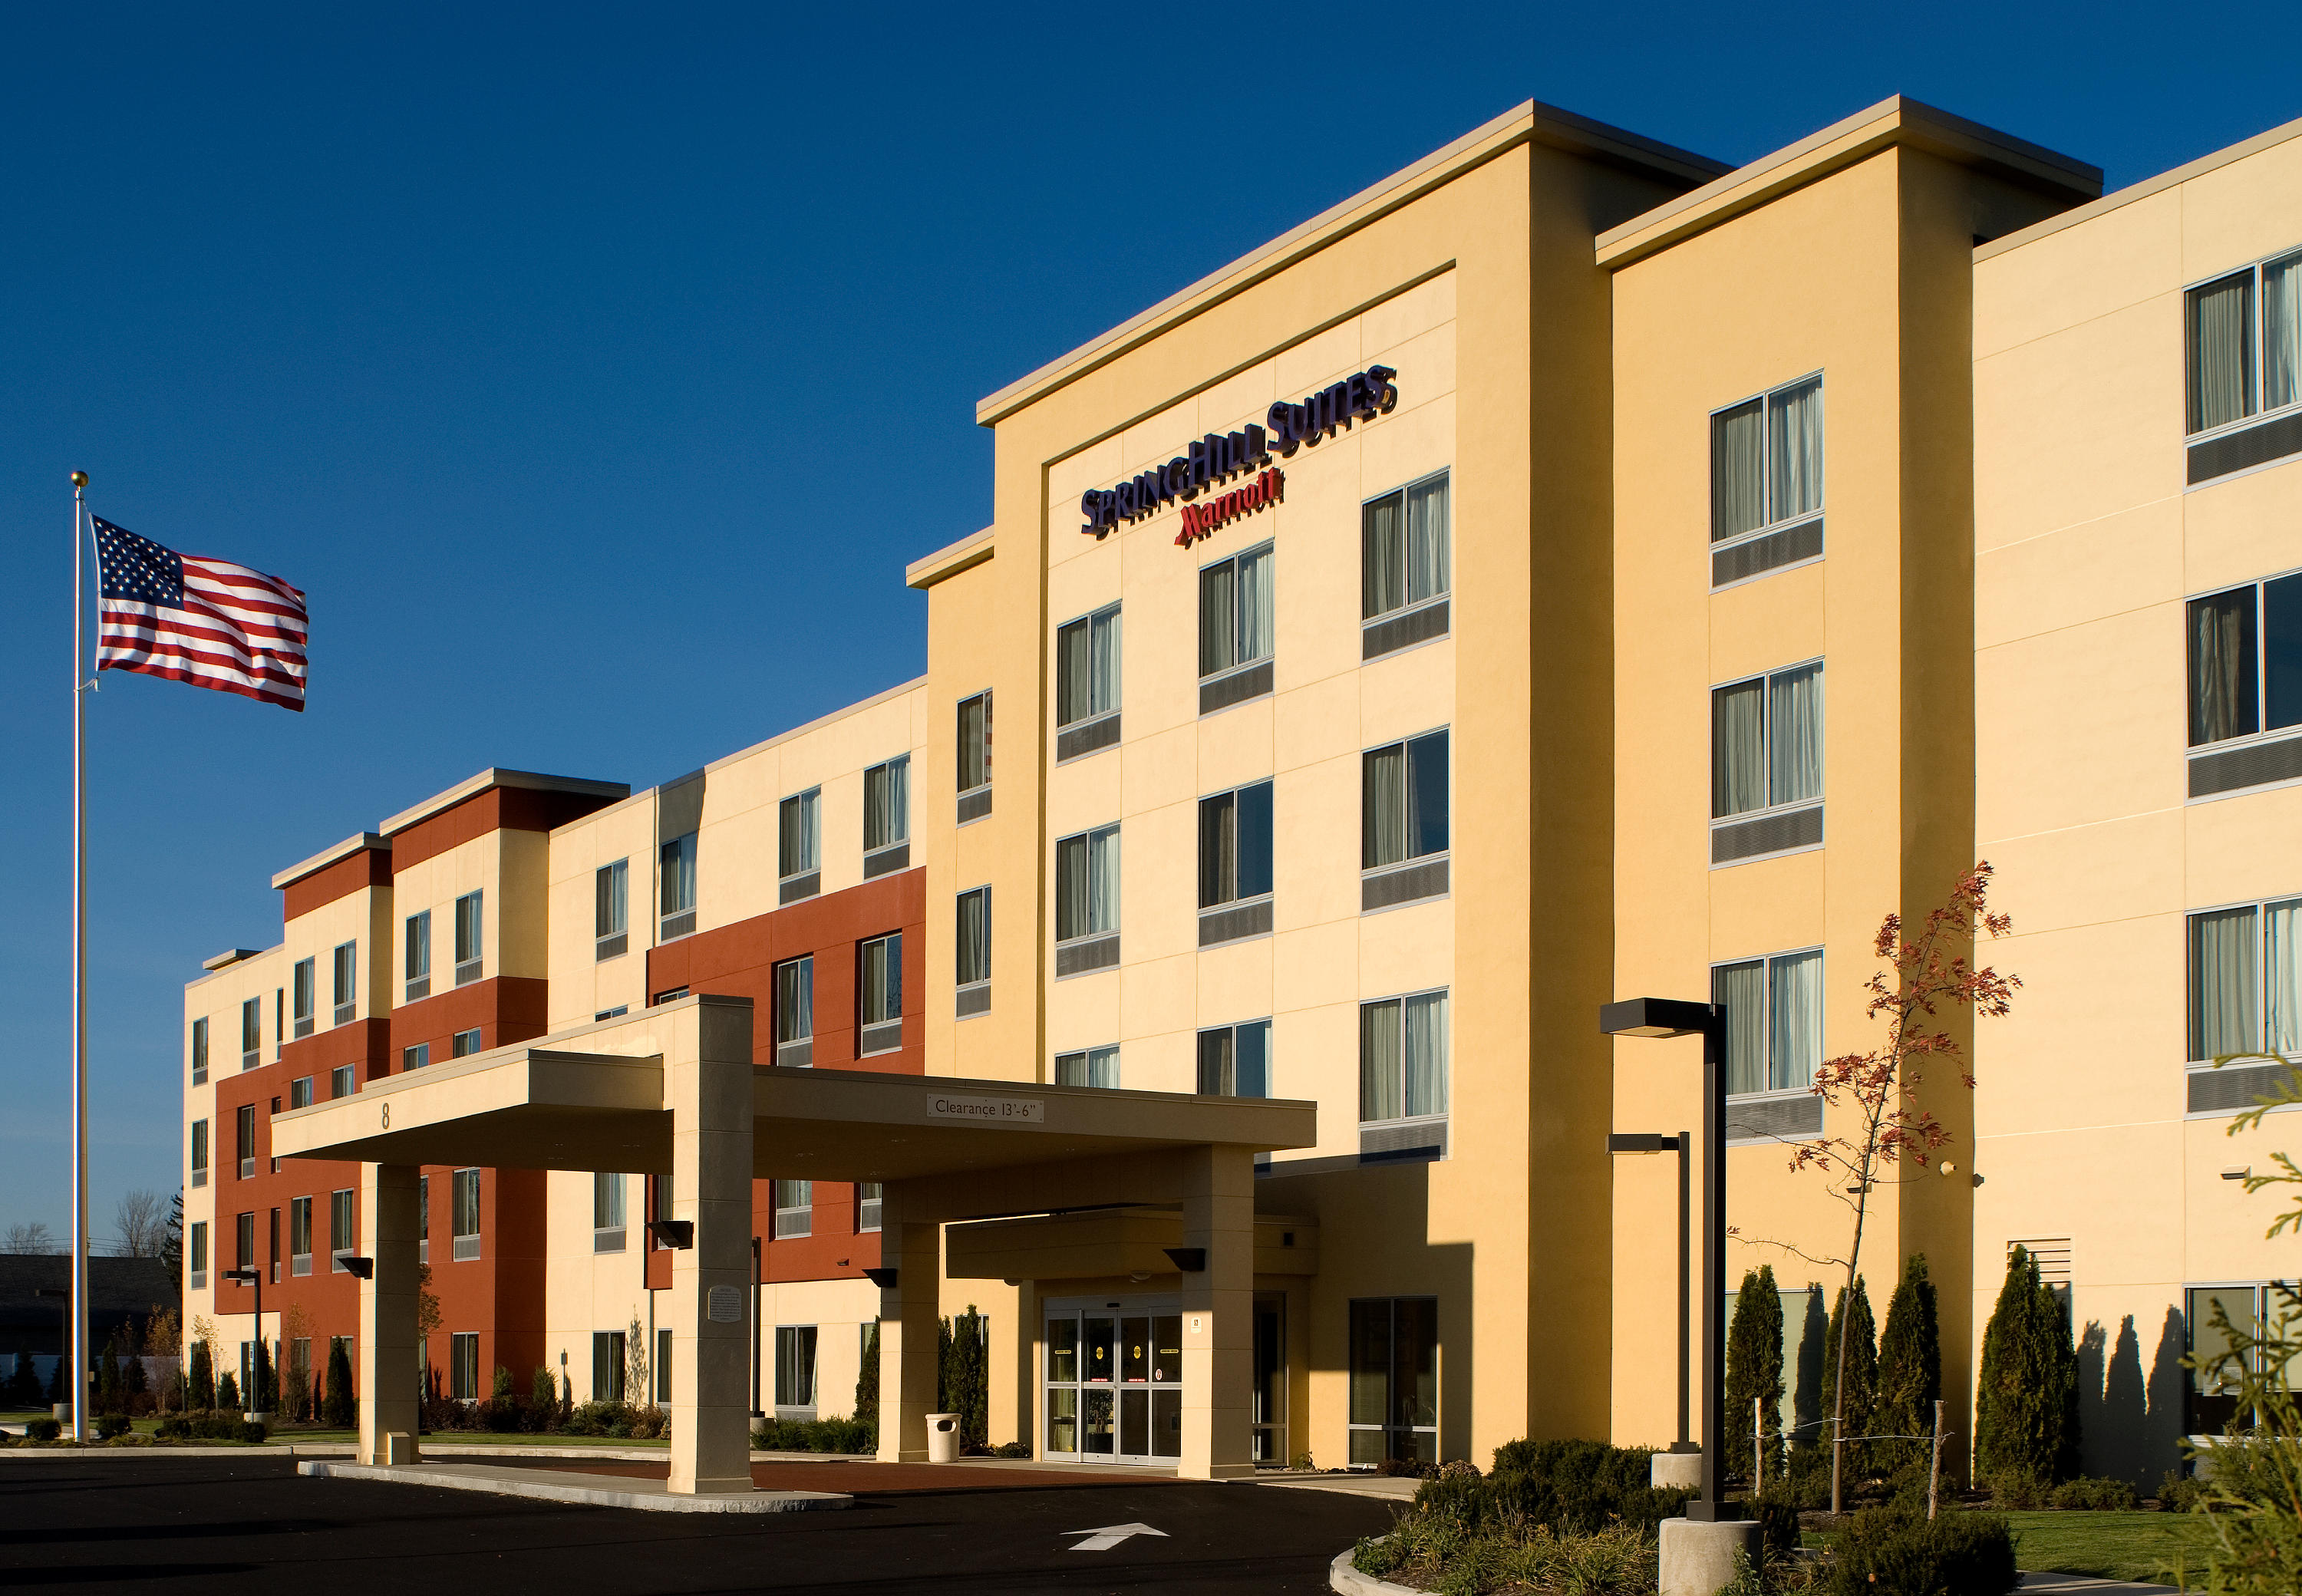 SpringHill Suites by Marriott Albany-Colonie image 7